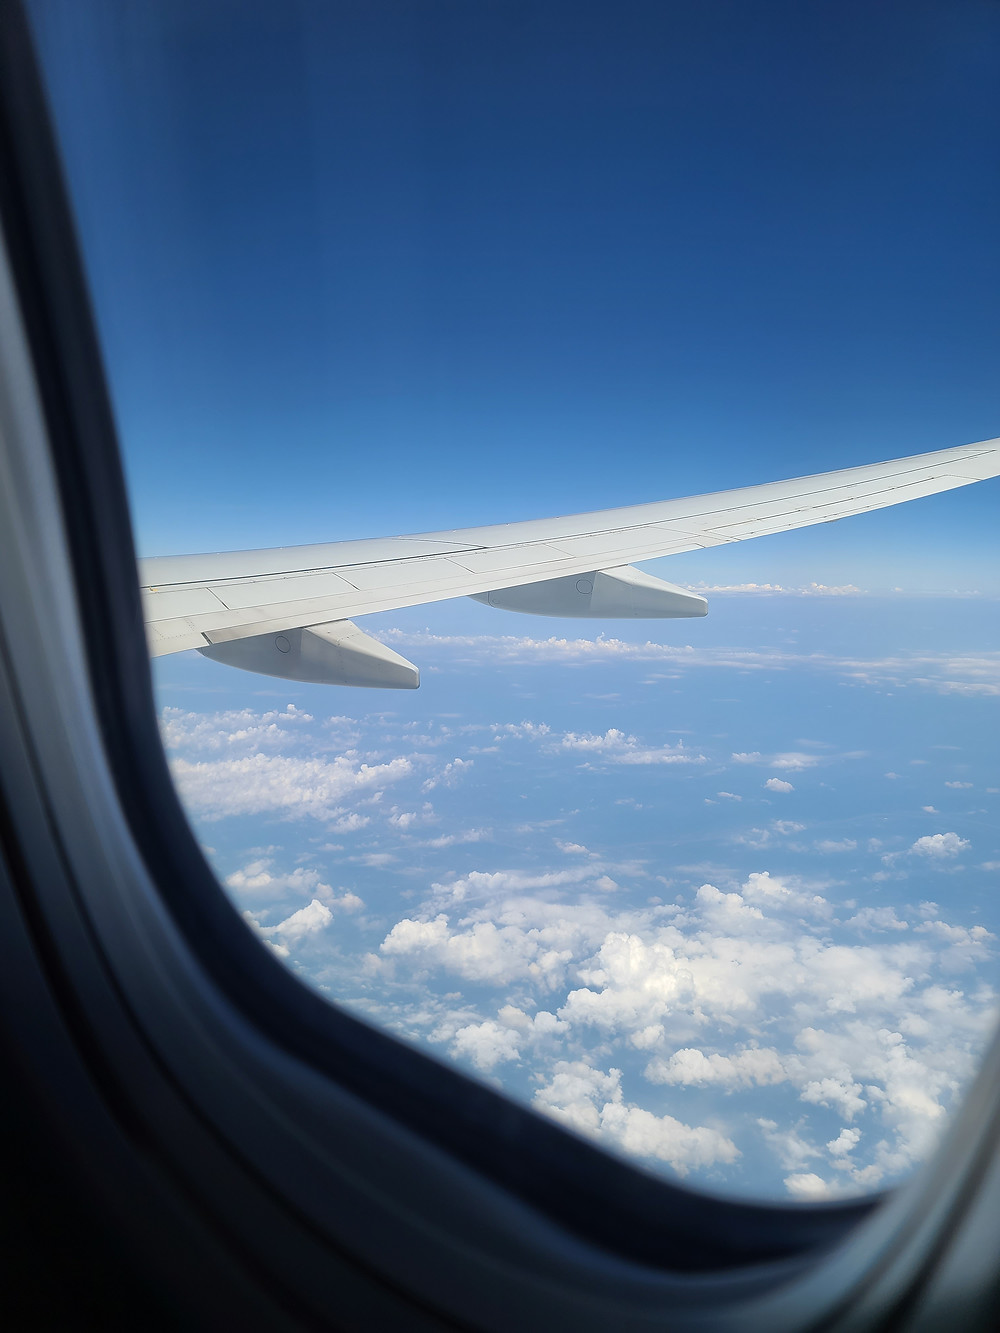 View of the clouds outside my window on the American Airlines flight.